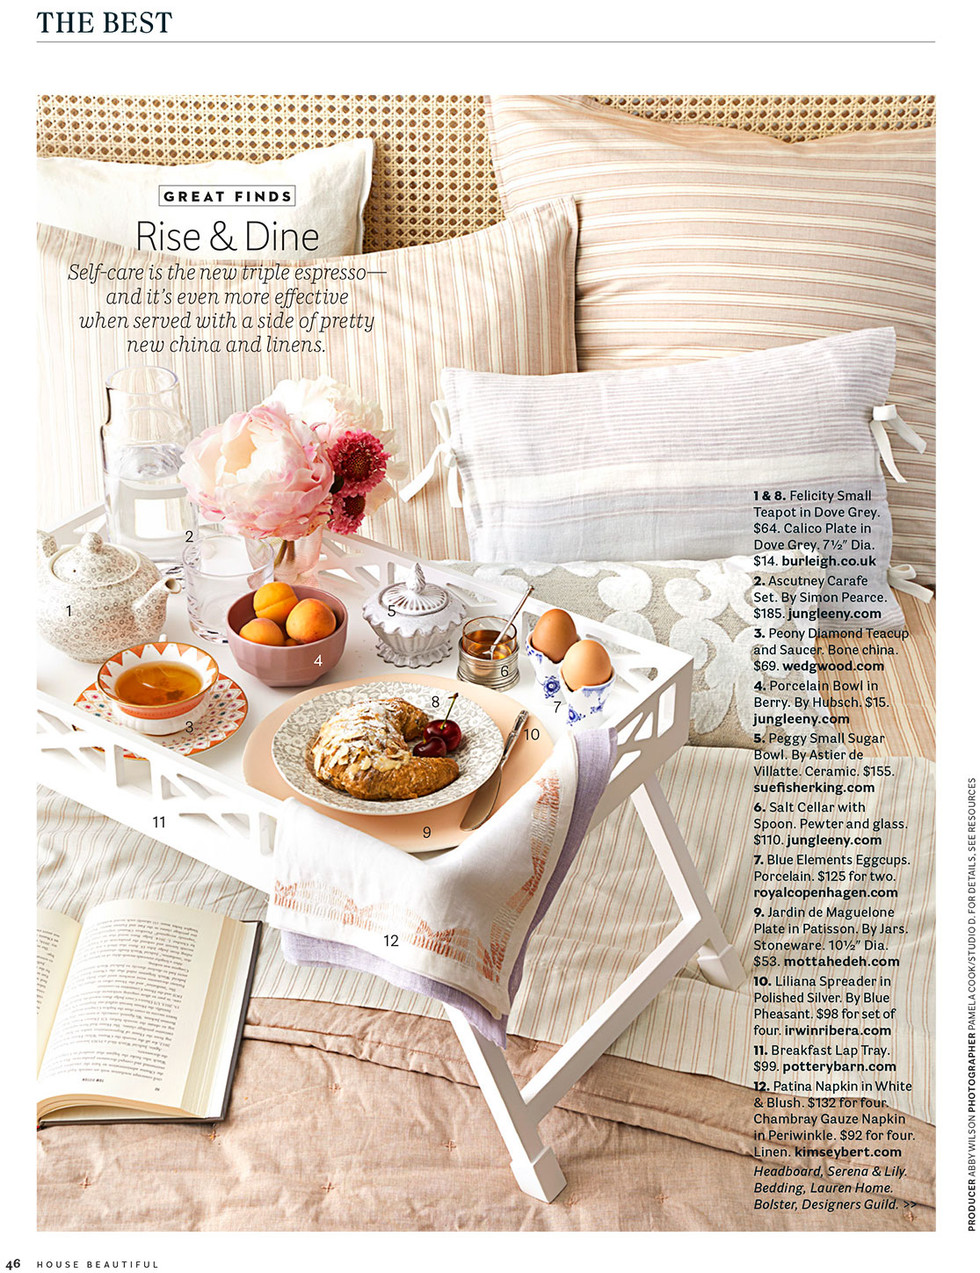 Published in September 2017 House Beautiful